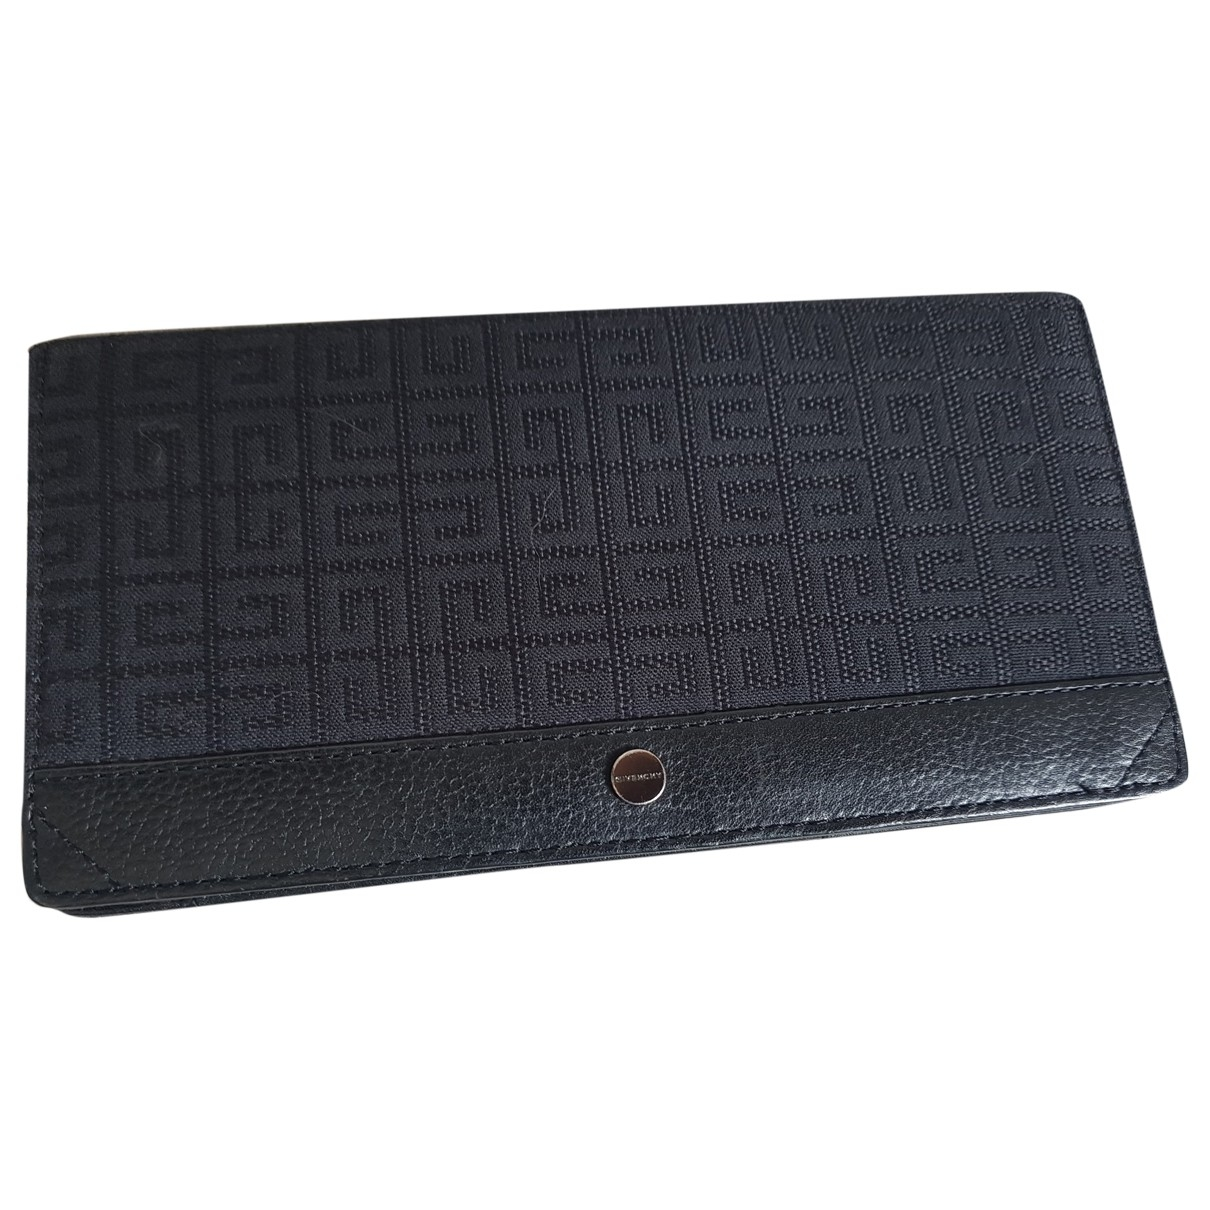 Givenchy \N Black Cloth wallet for Women \N